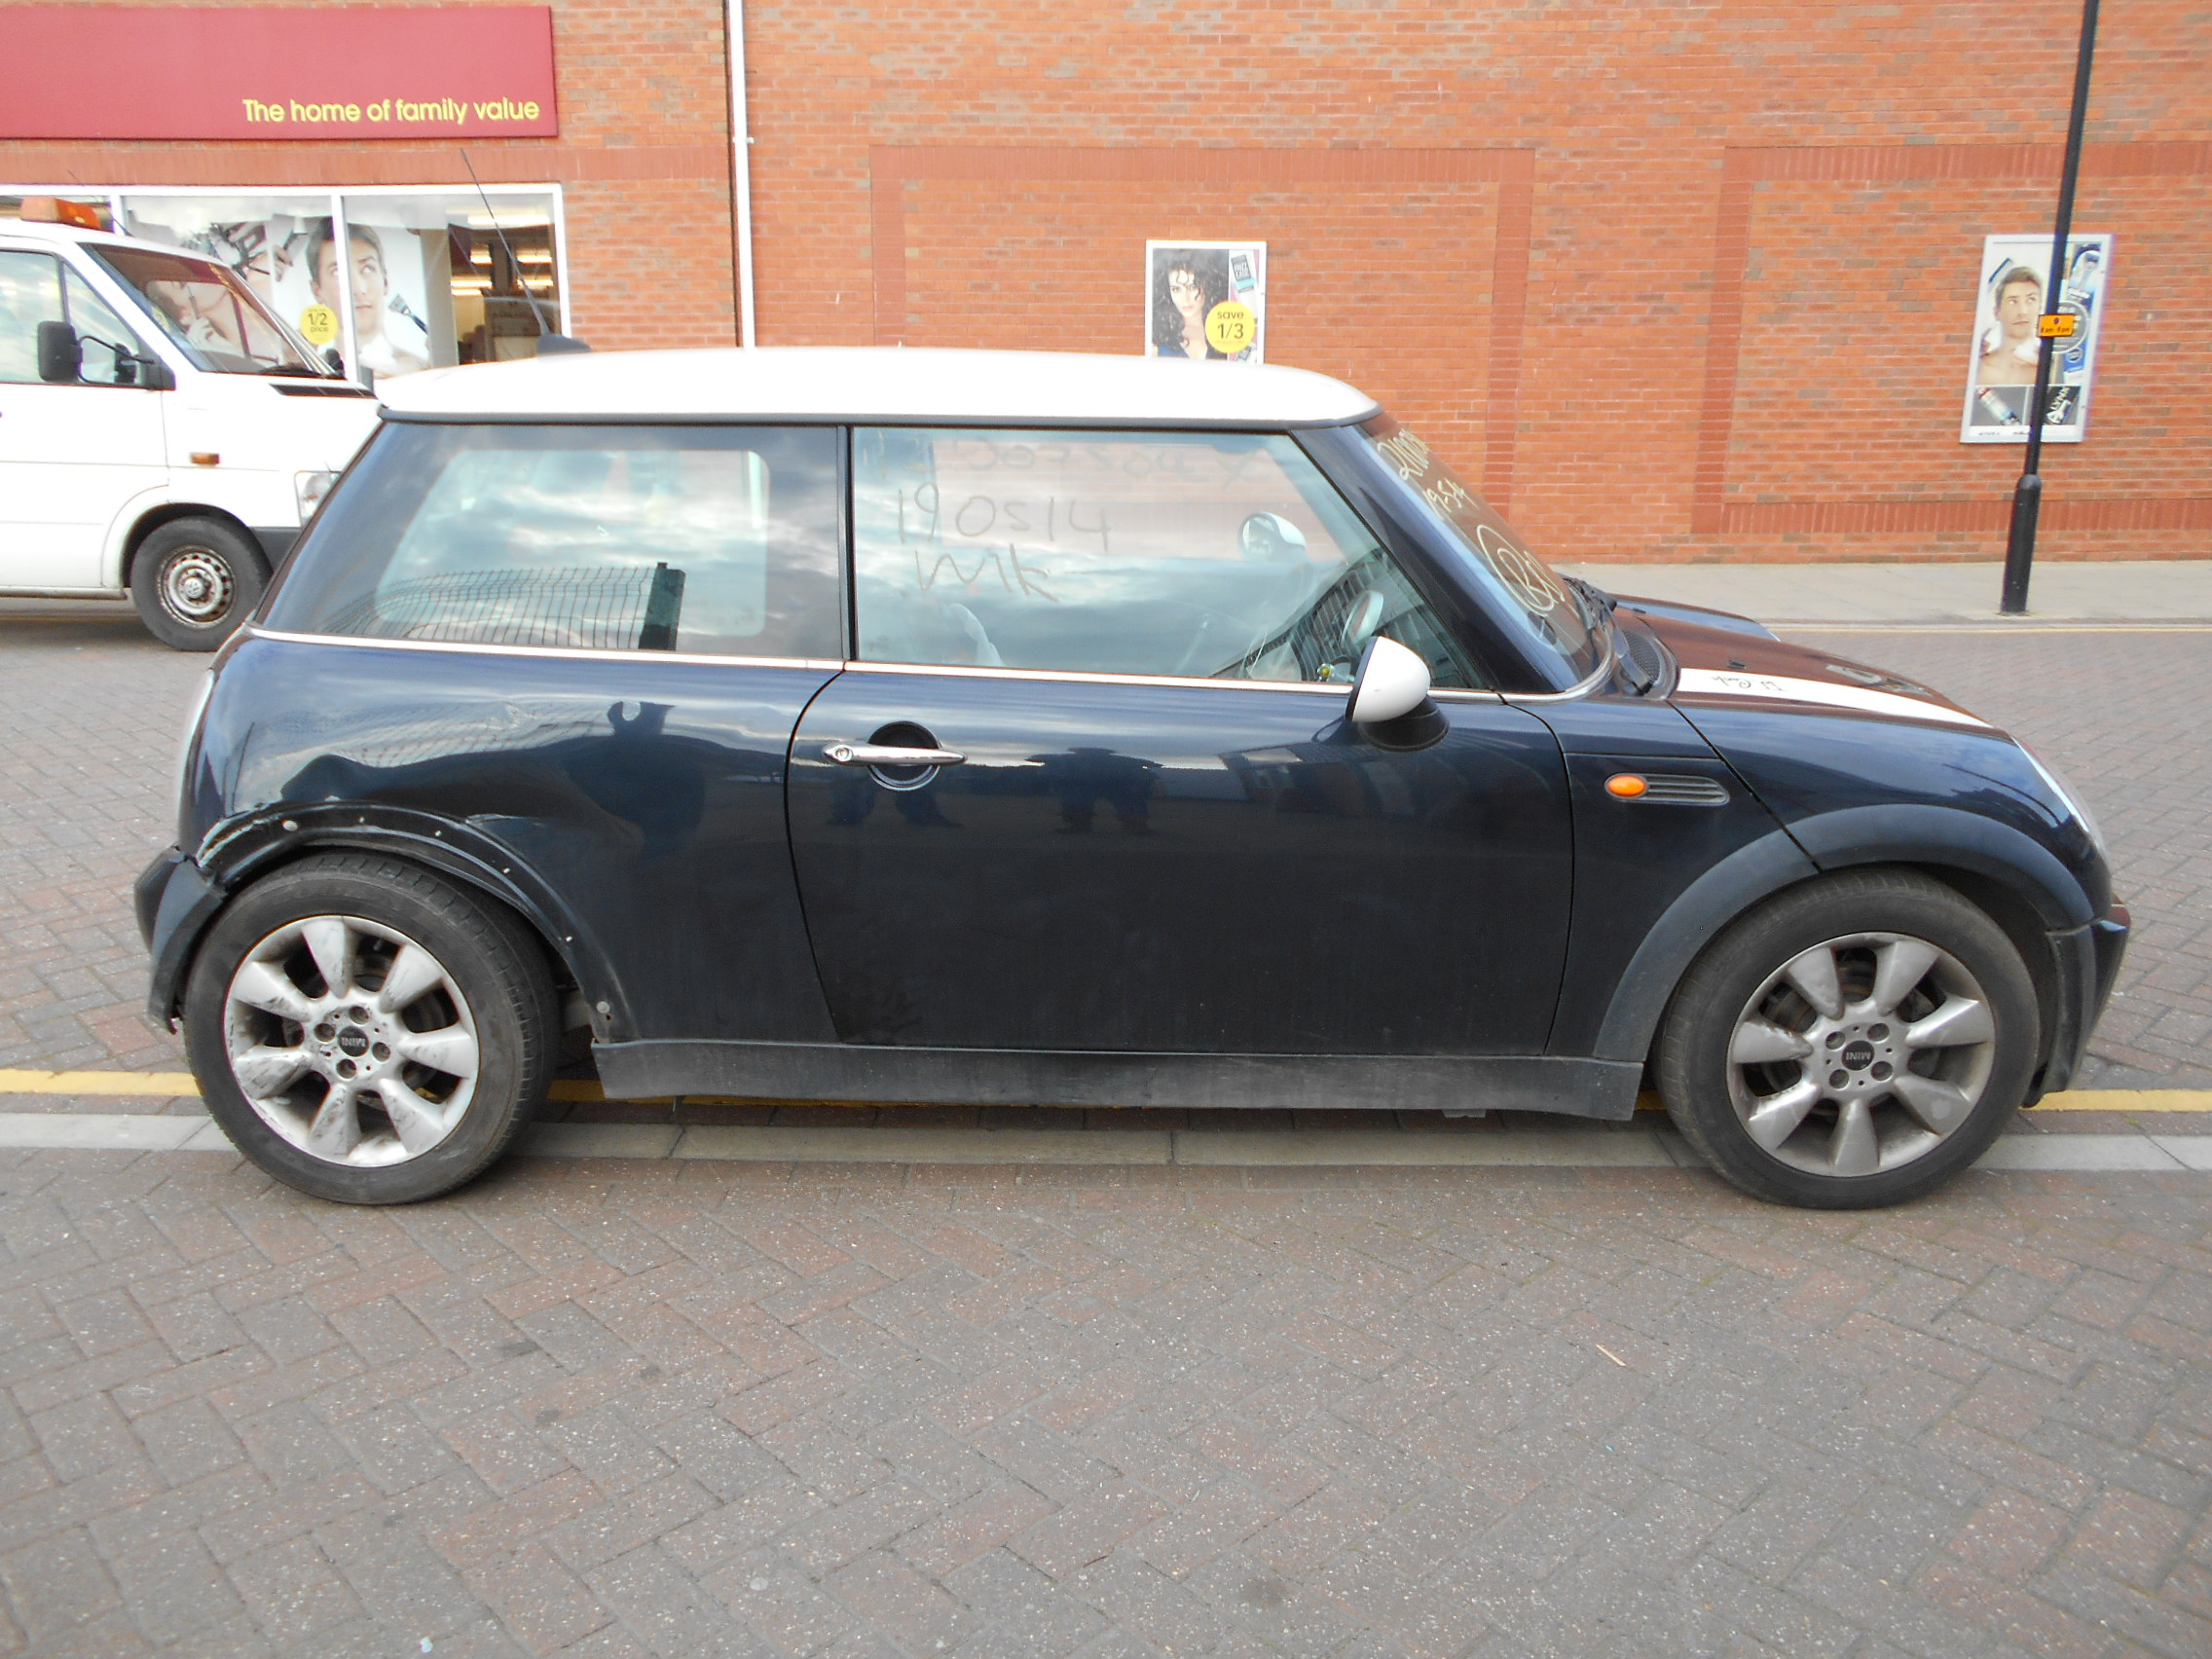 05 Astro Black Metallic 1.6 BMW Mini Cooper - 1